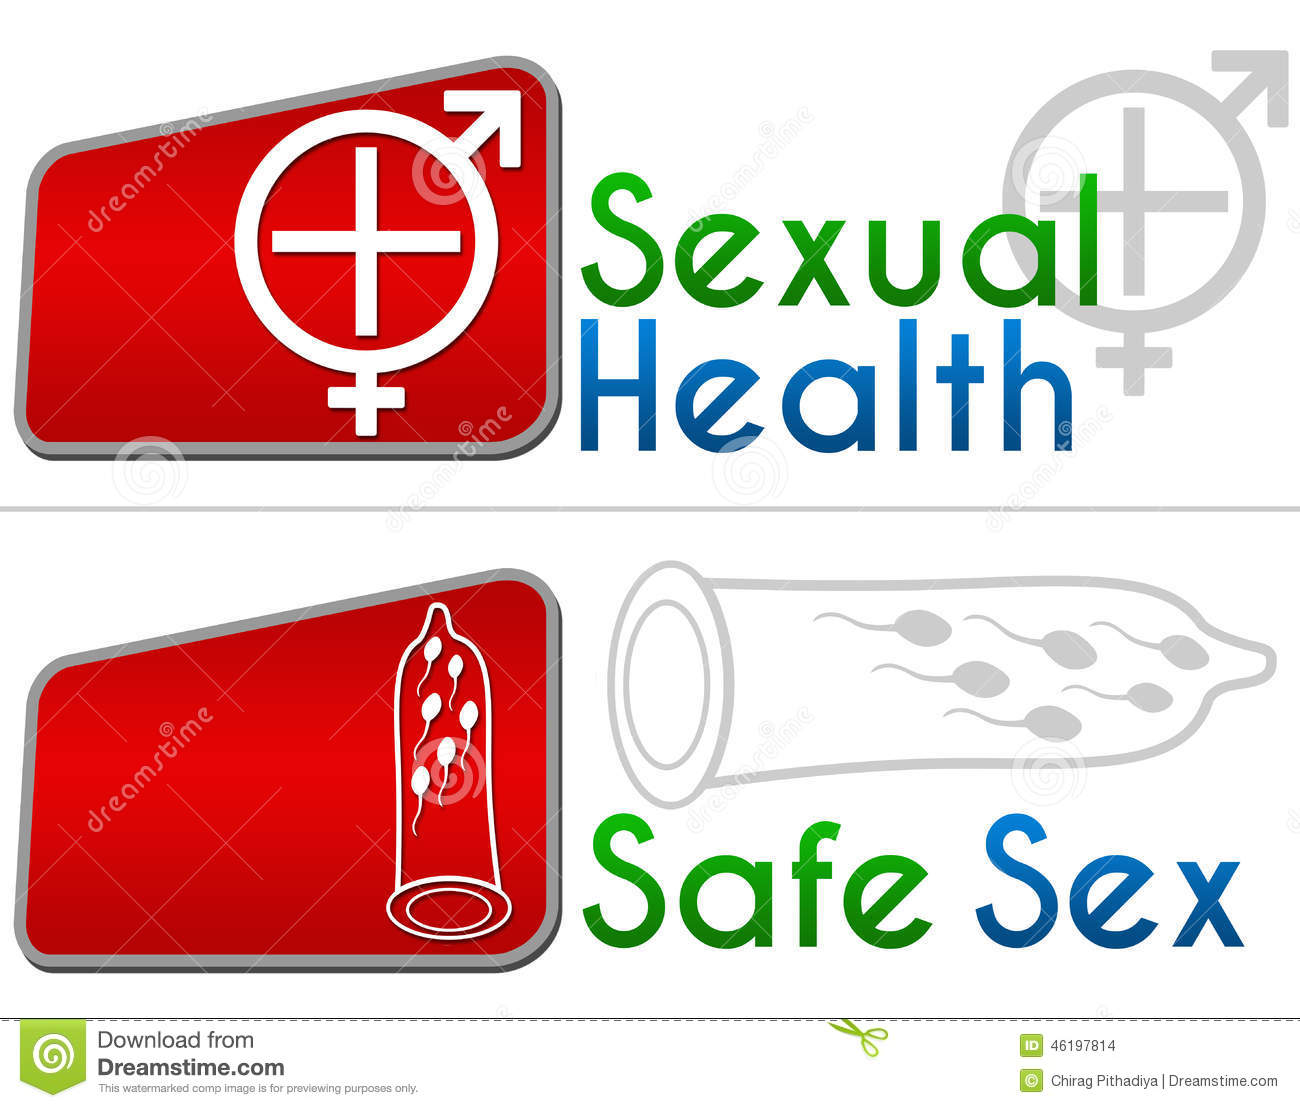 Sexual health inventory for men form